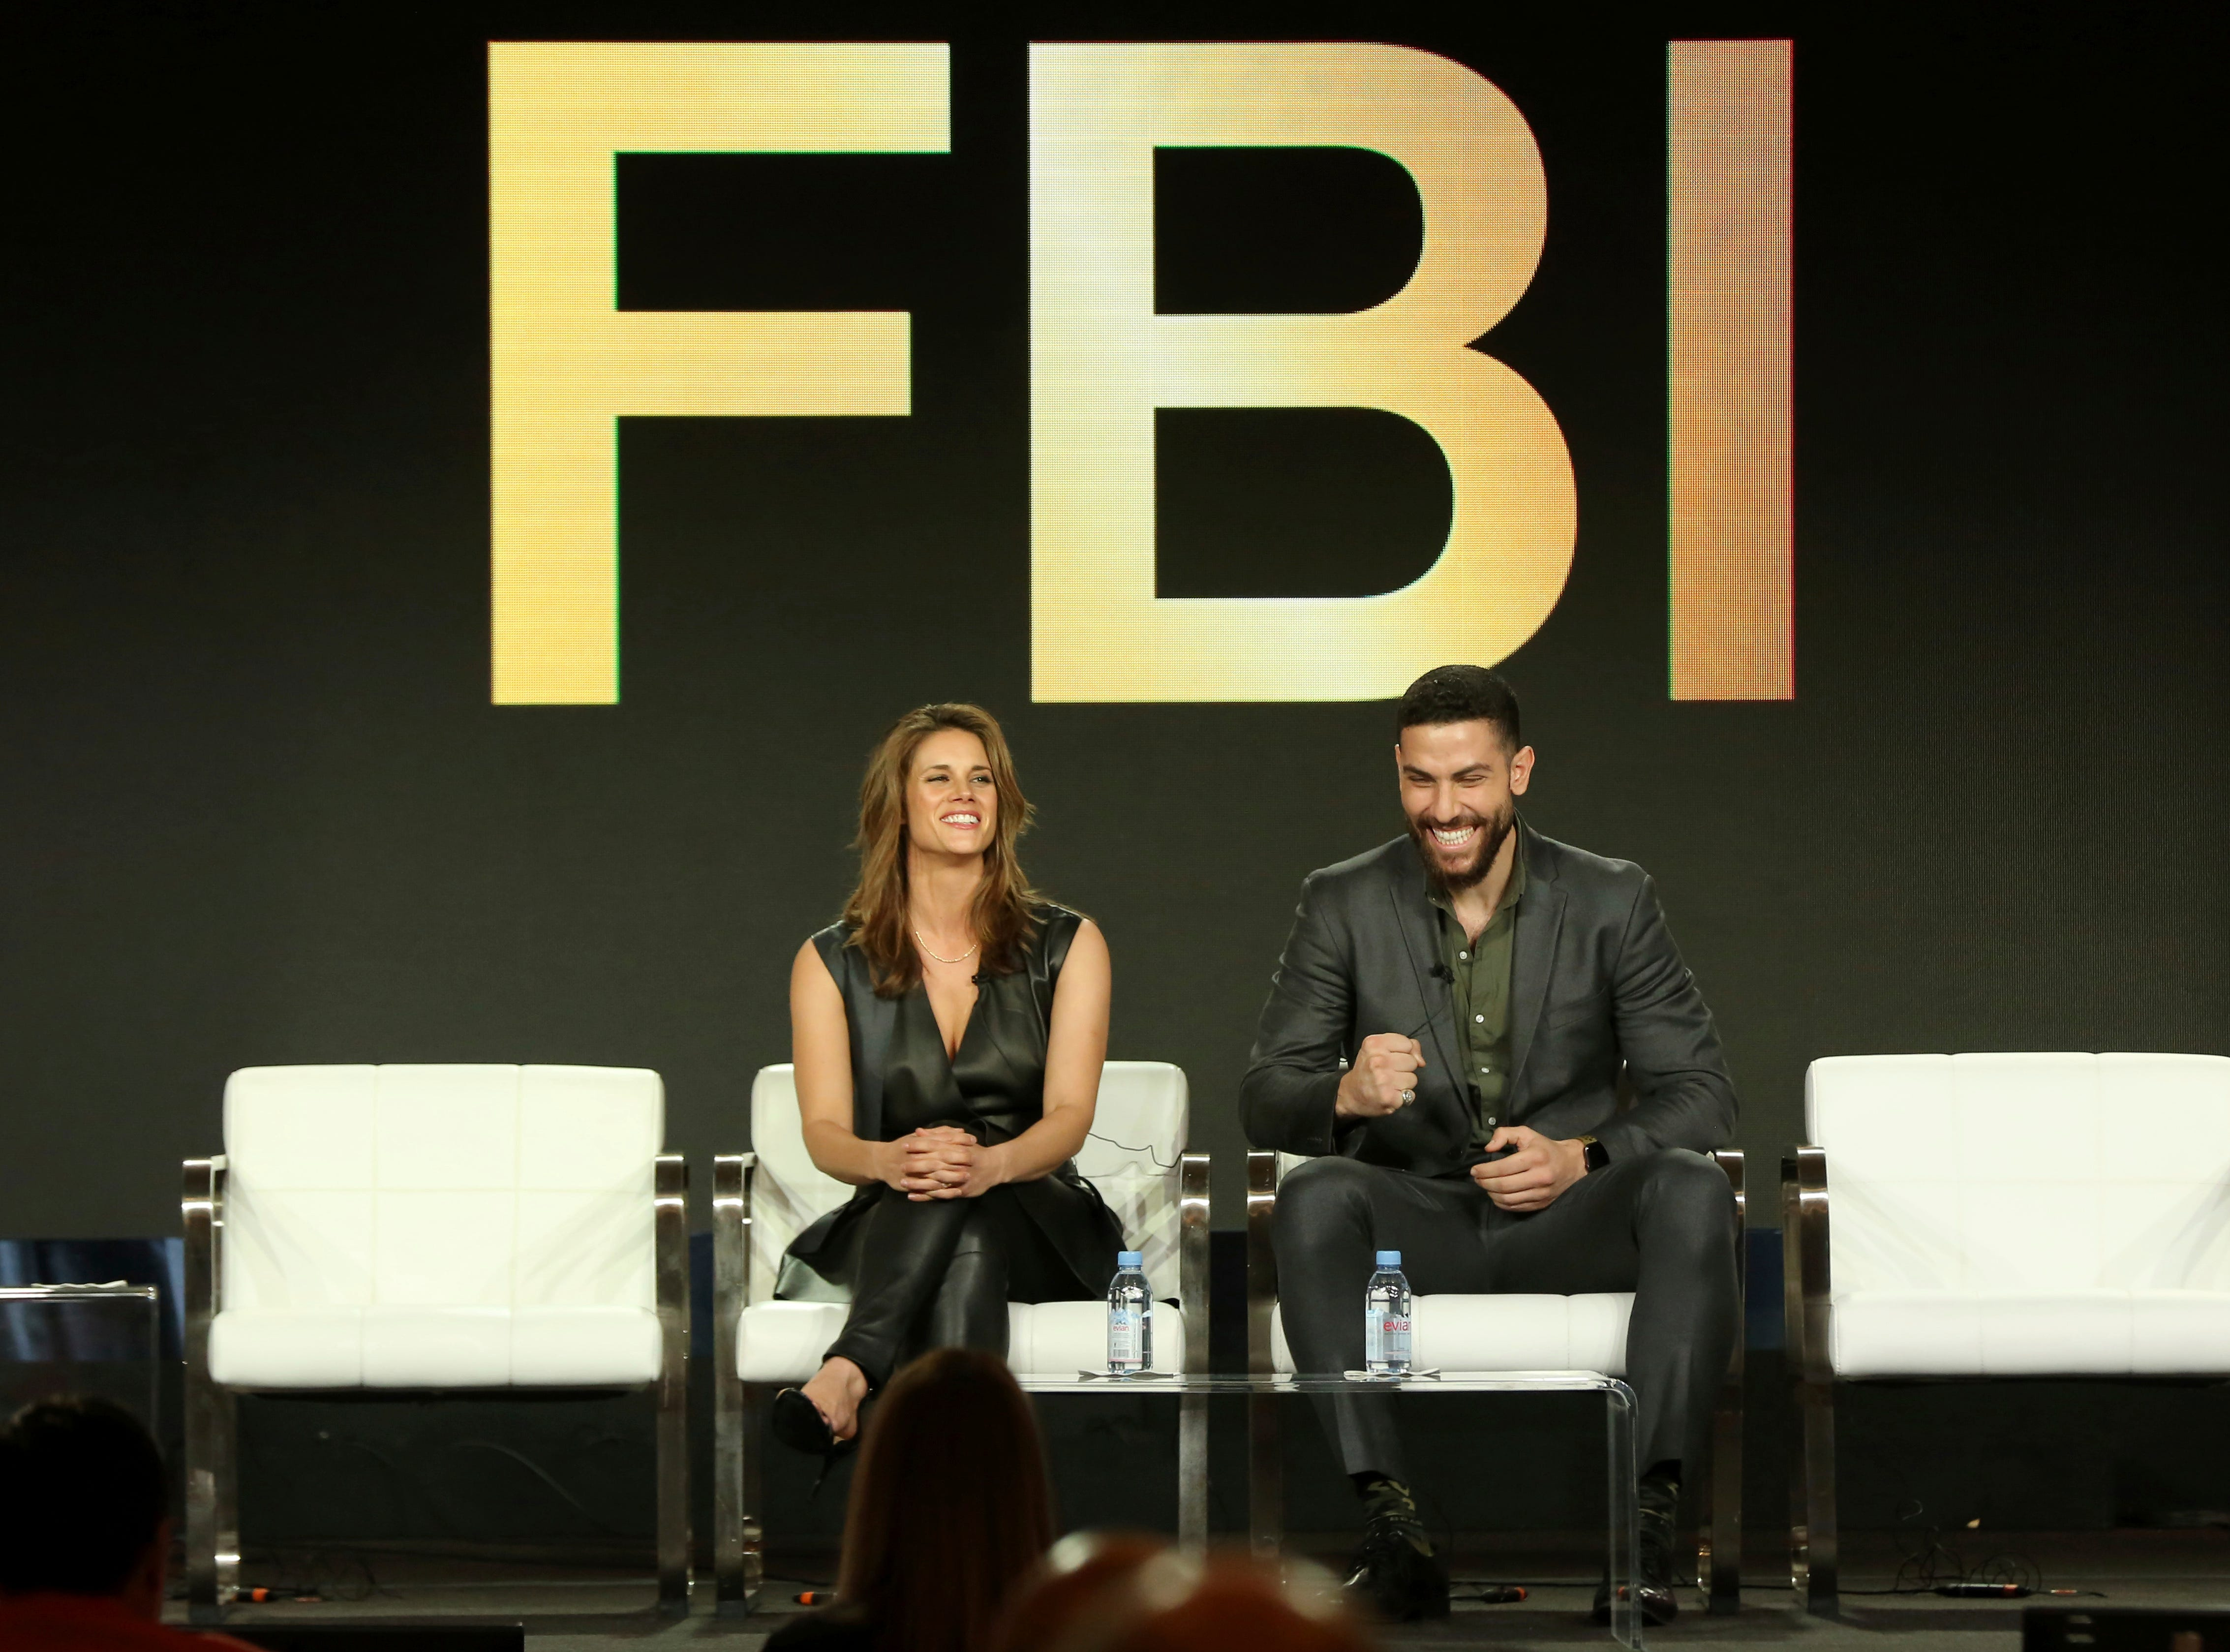 """Missy Peregrym and Zeeko Zaki talk about their series """"FBI,"""" which has been renewed for a second season."""